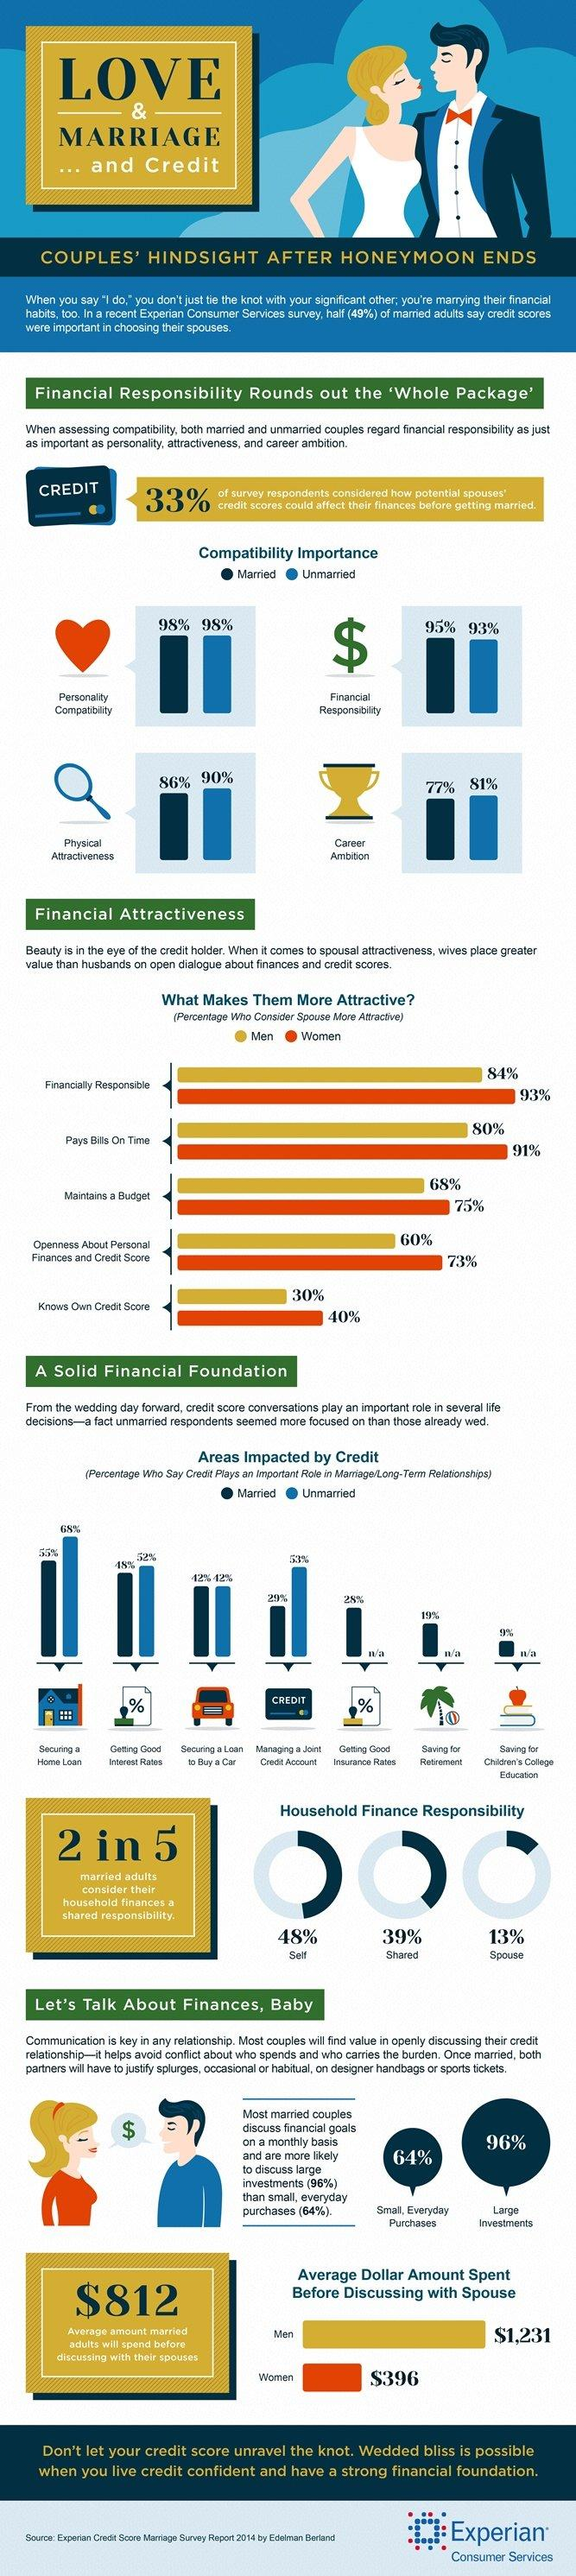 infographic experian marriage and credit